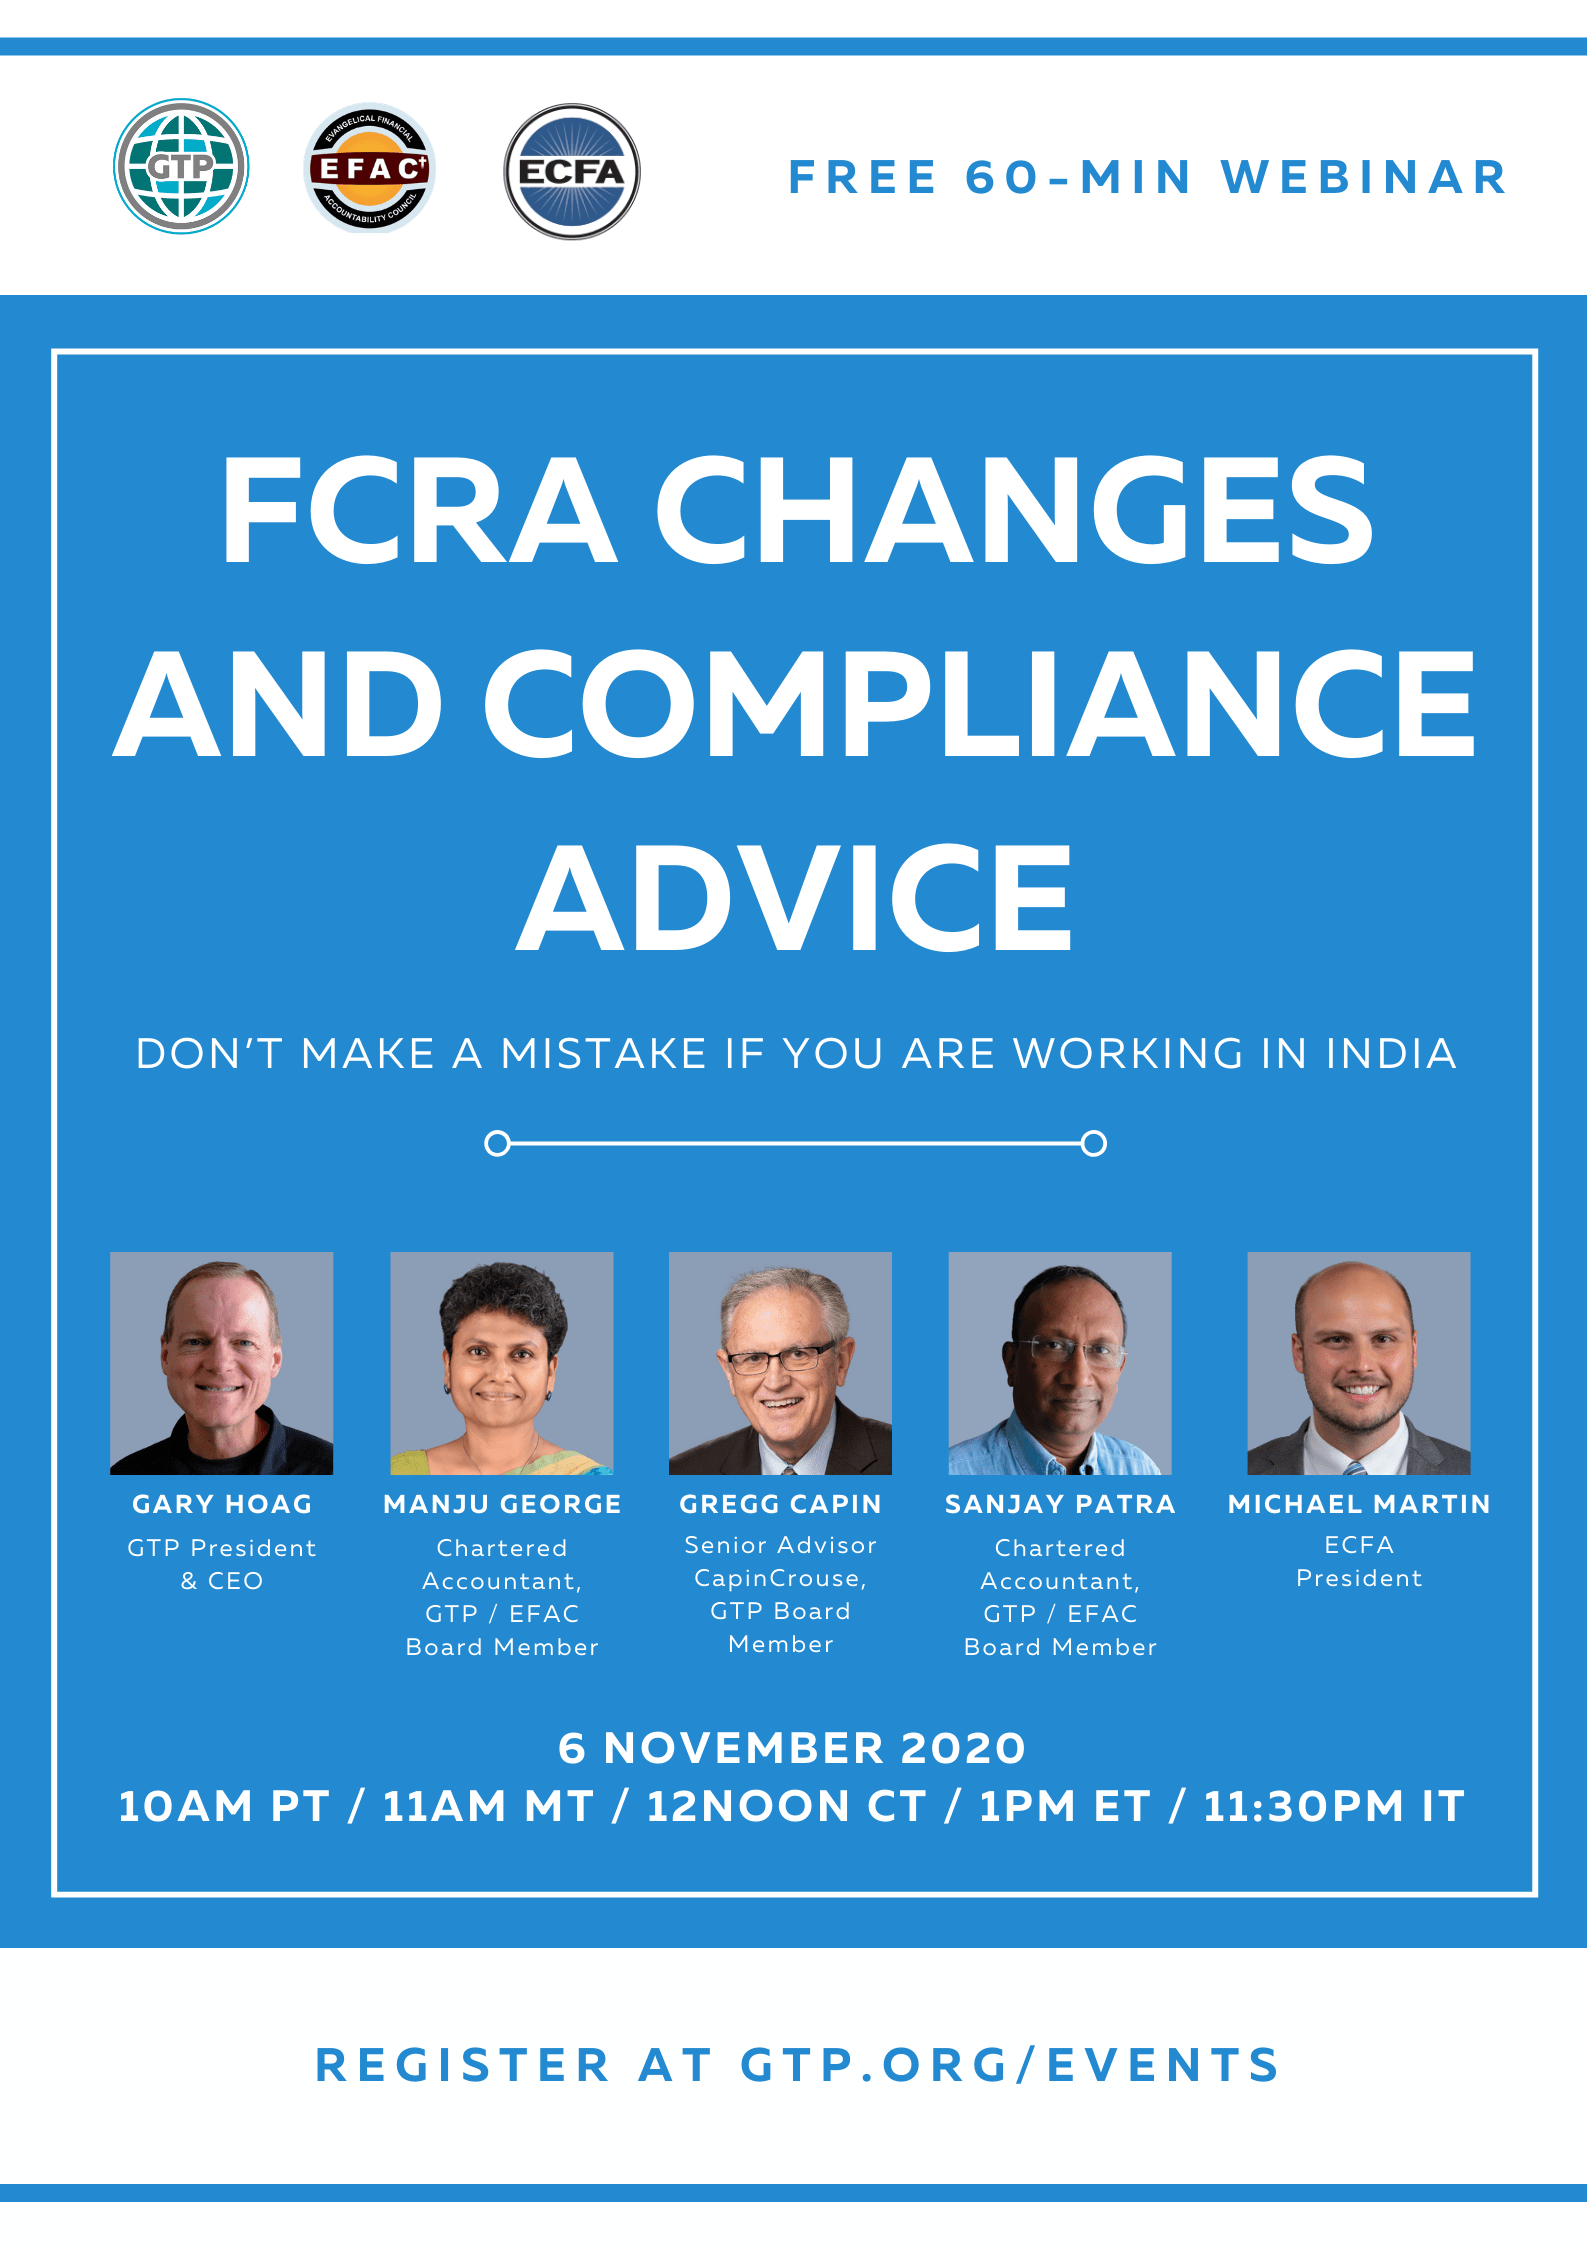 GTP-EFAC-ECFA FCRA Changes and Compliance Advice 06.11.2020